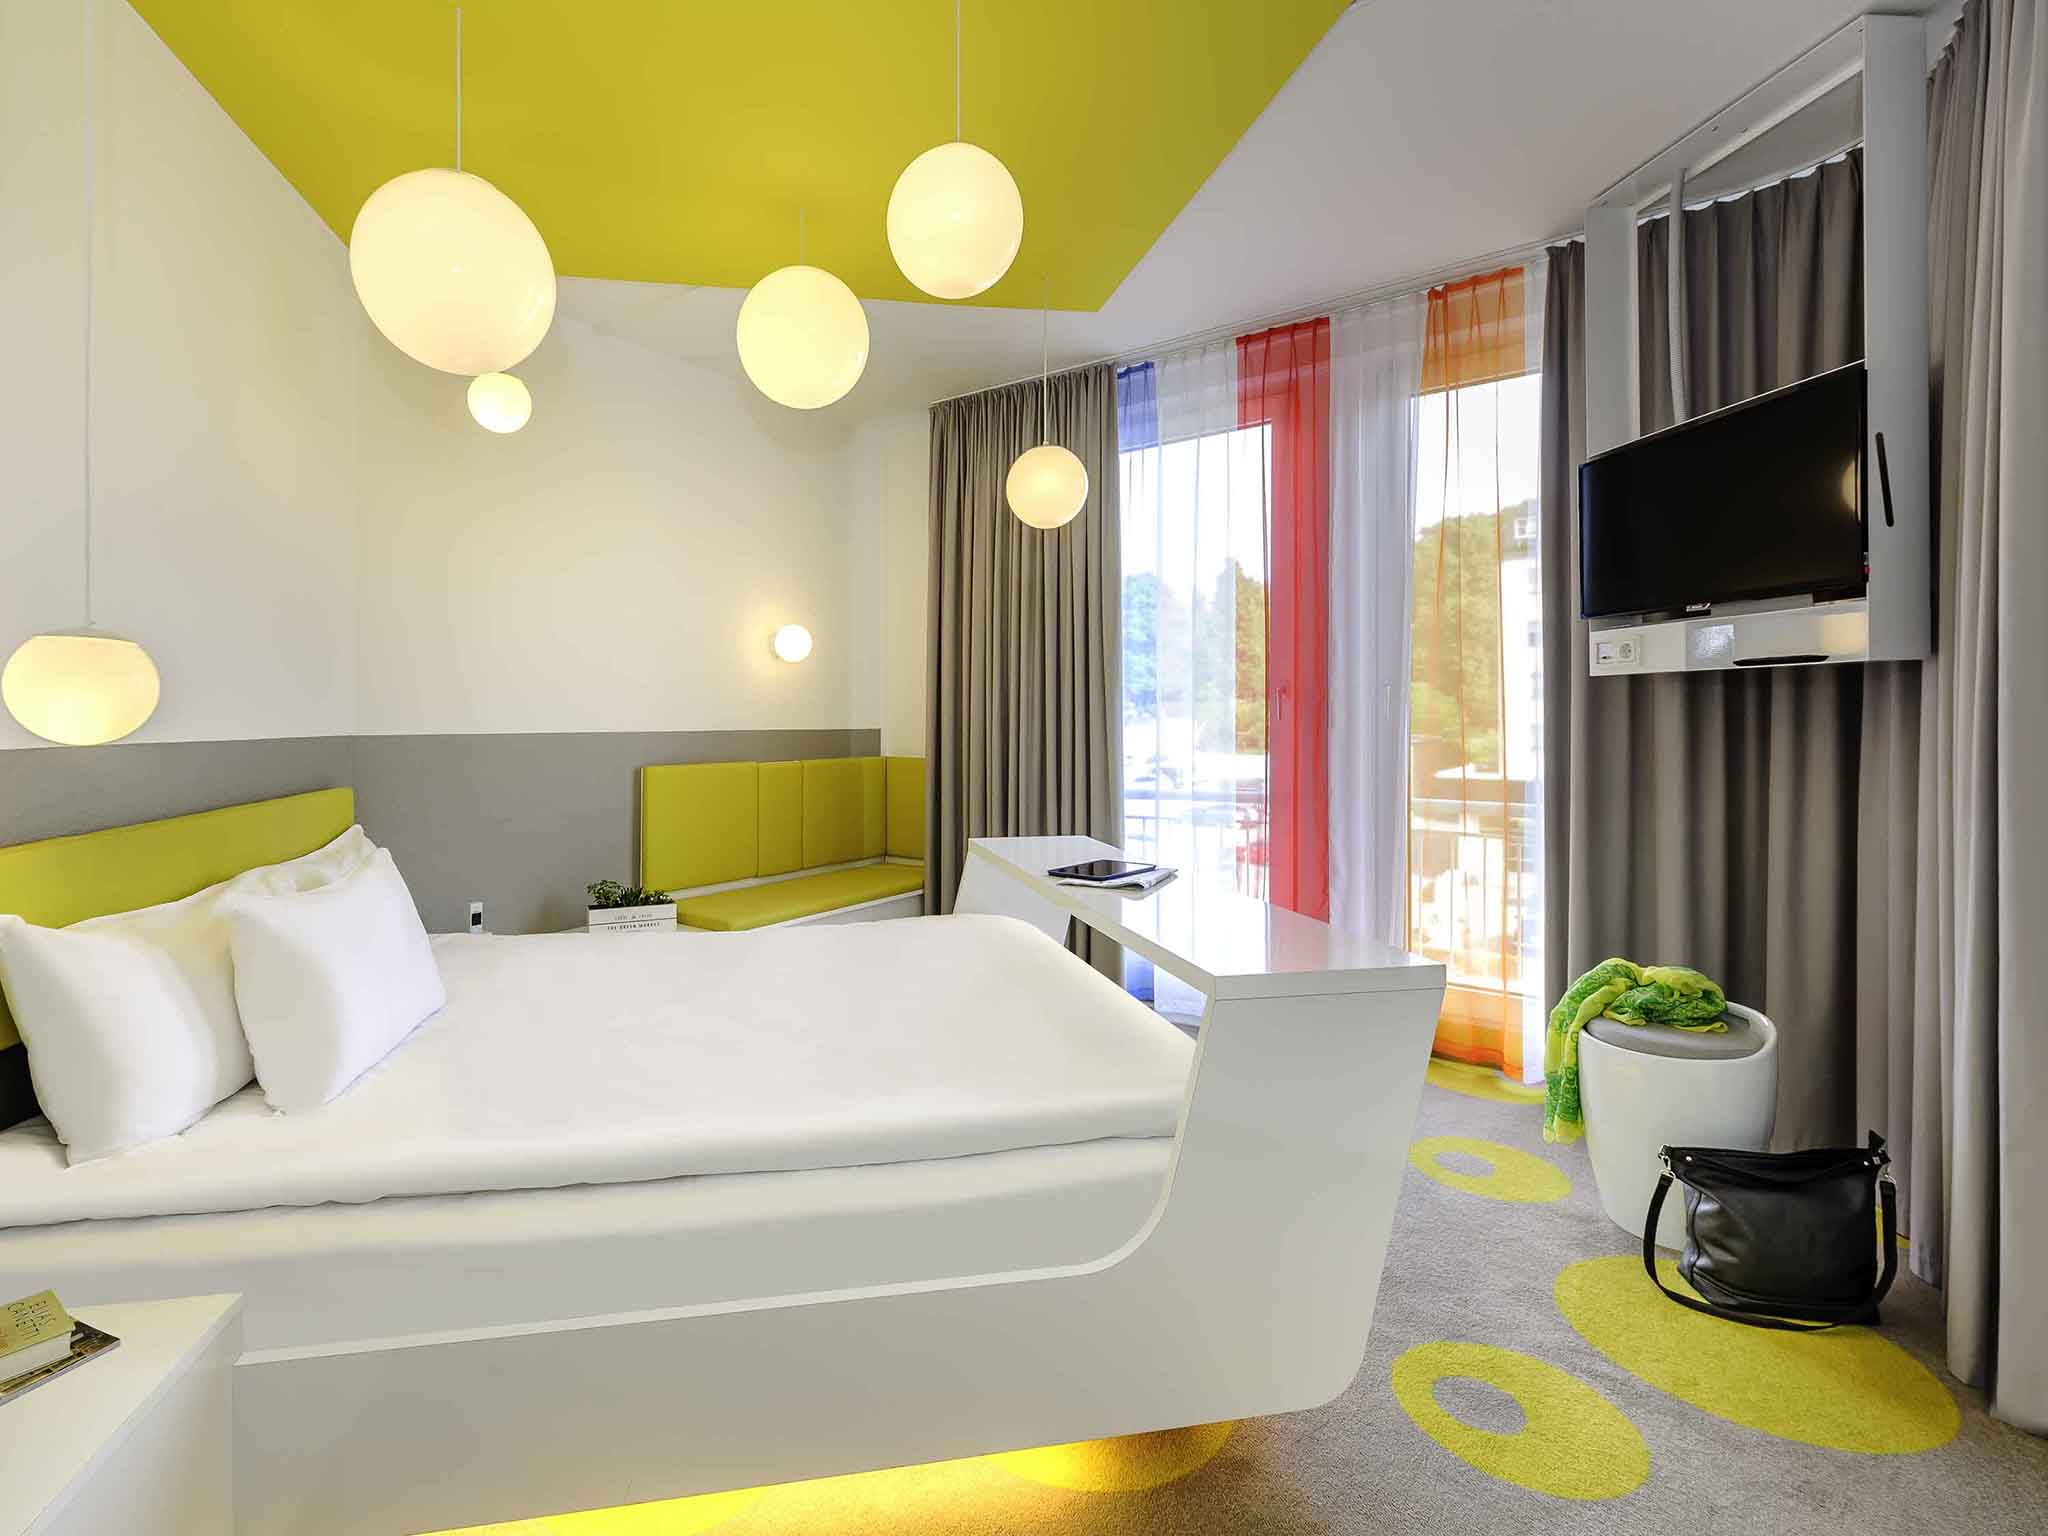 Camere ibis Styles Hotel Aachen City